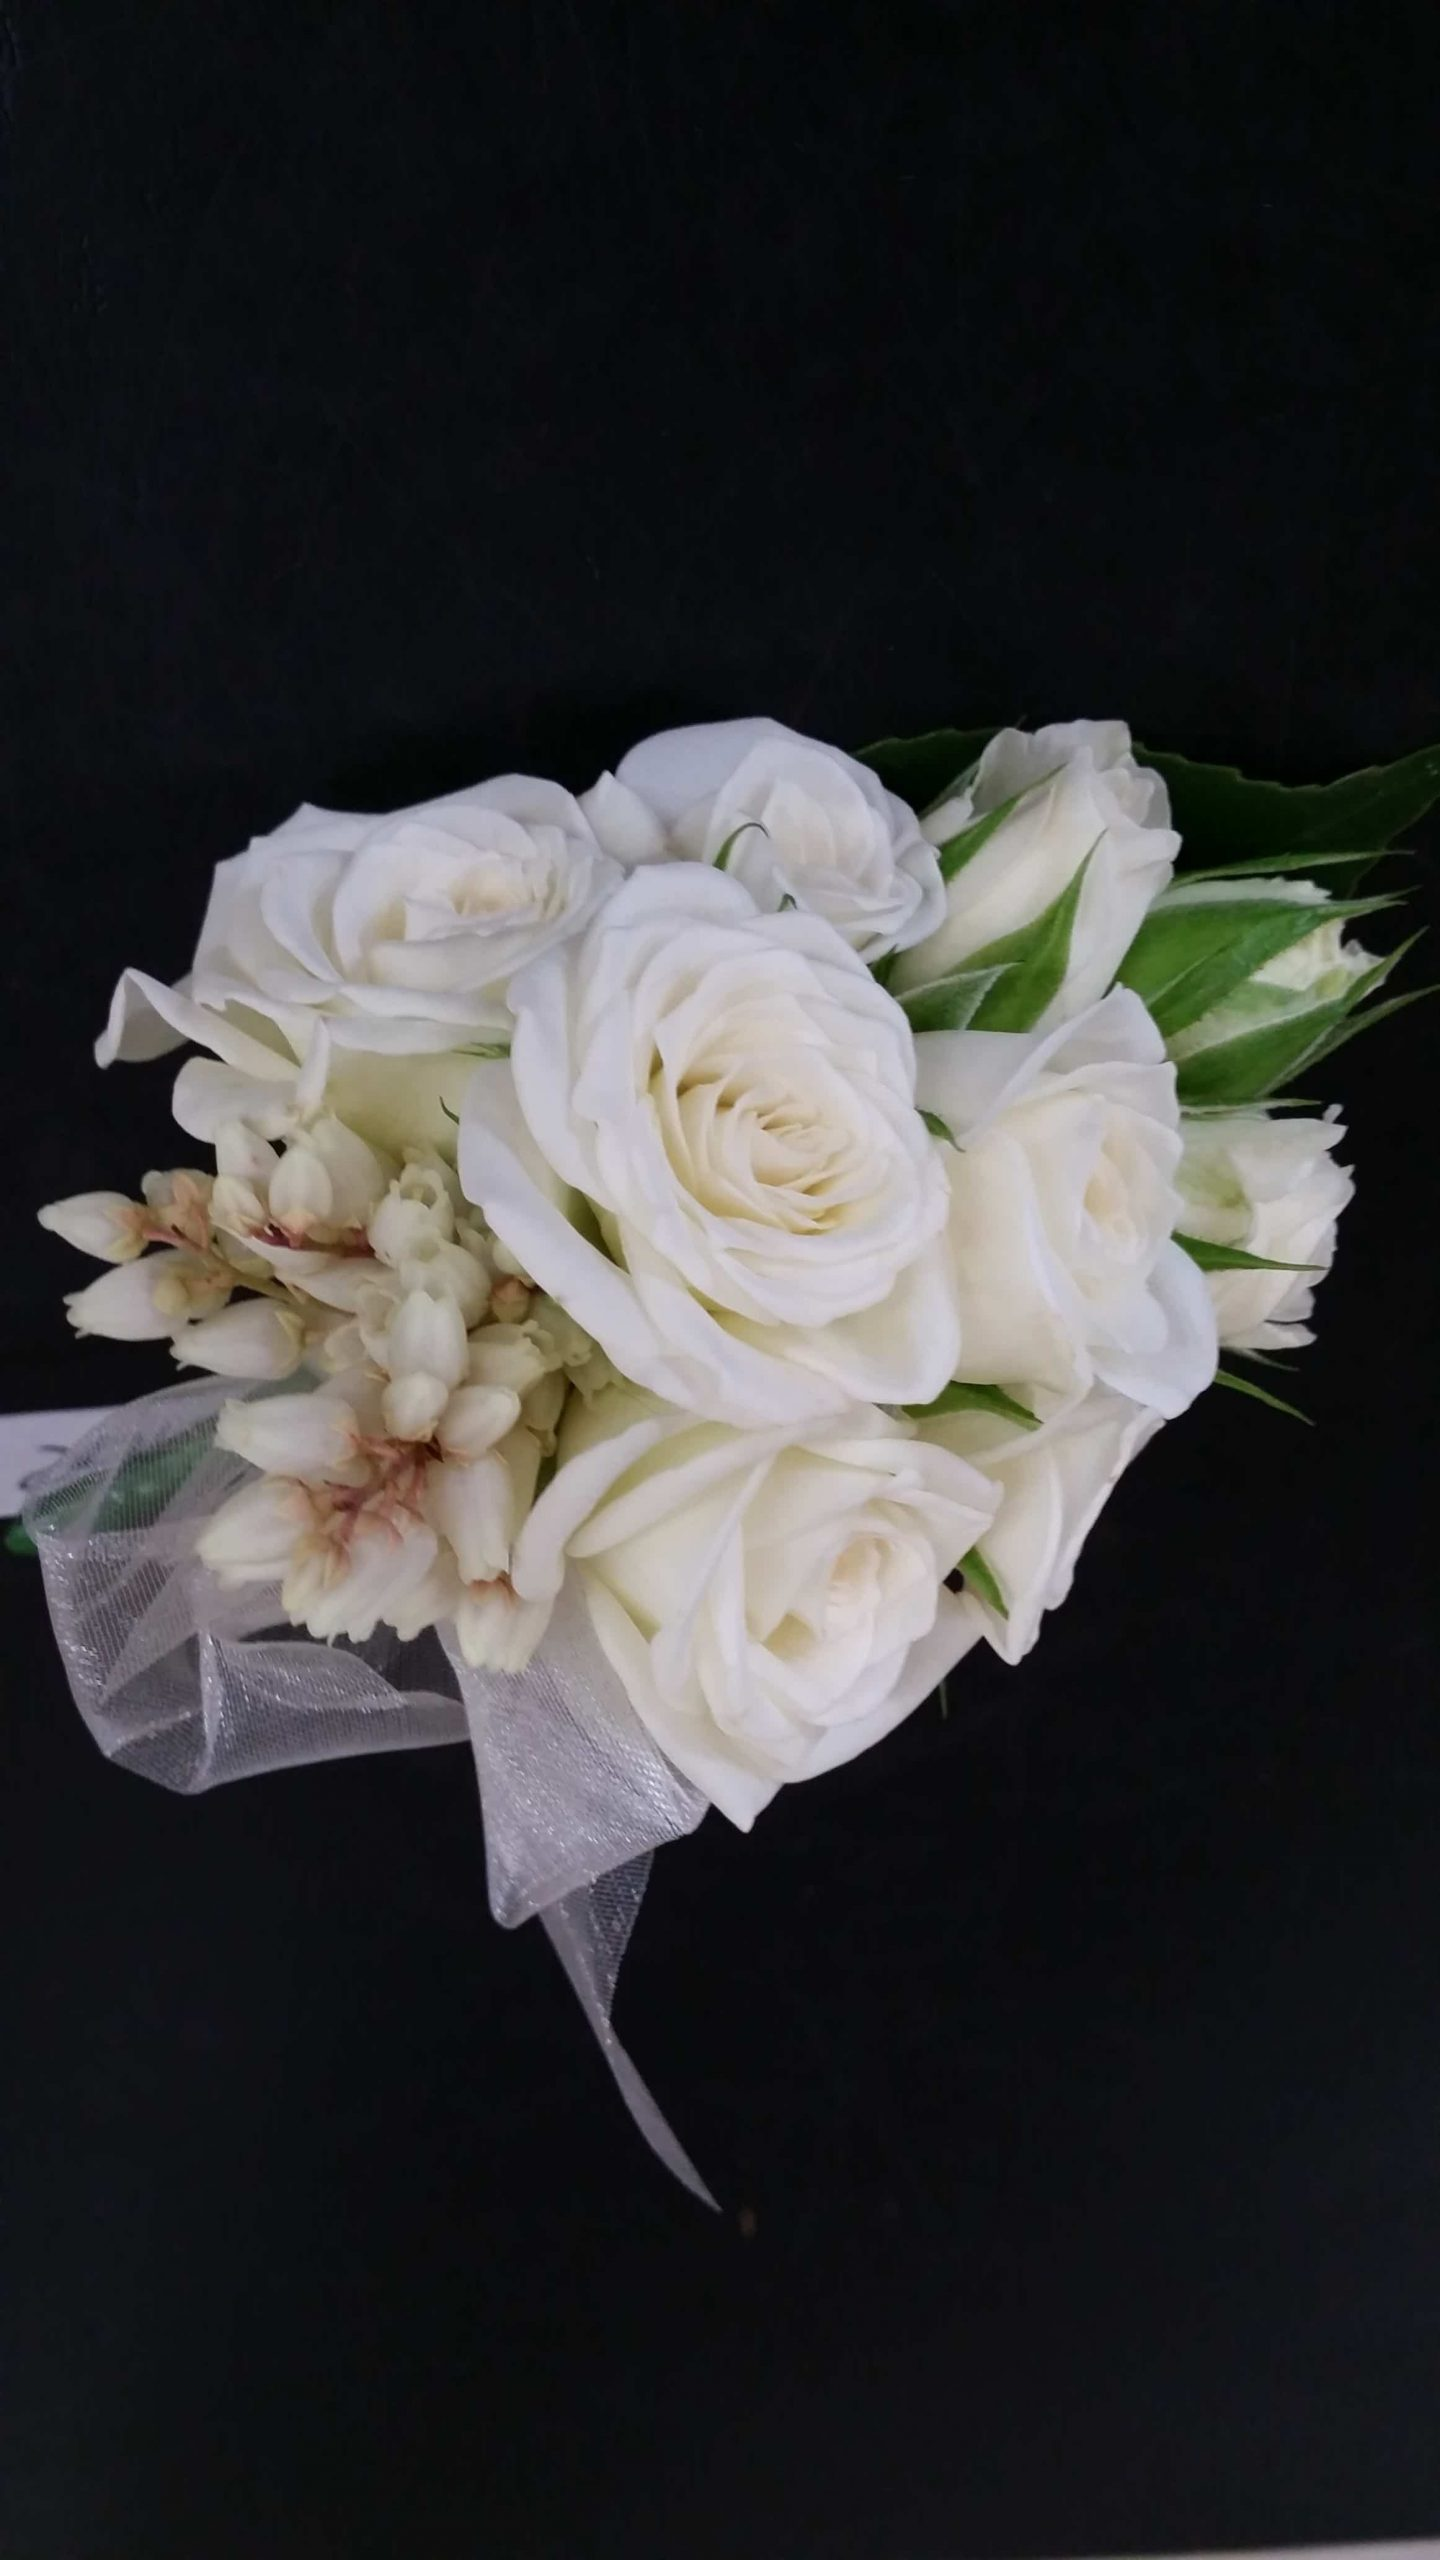 - image F.C.B.5-e1533082158514-scaled on https://theflowermerchant.com.au